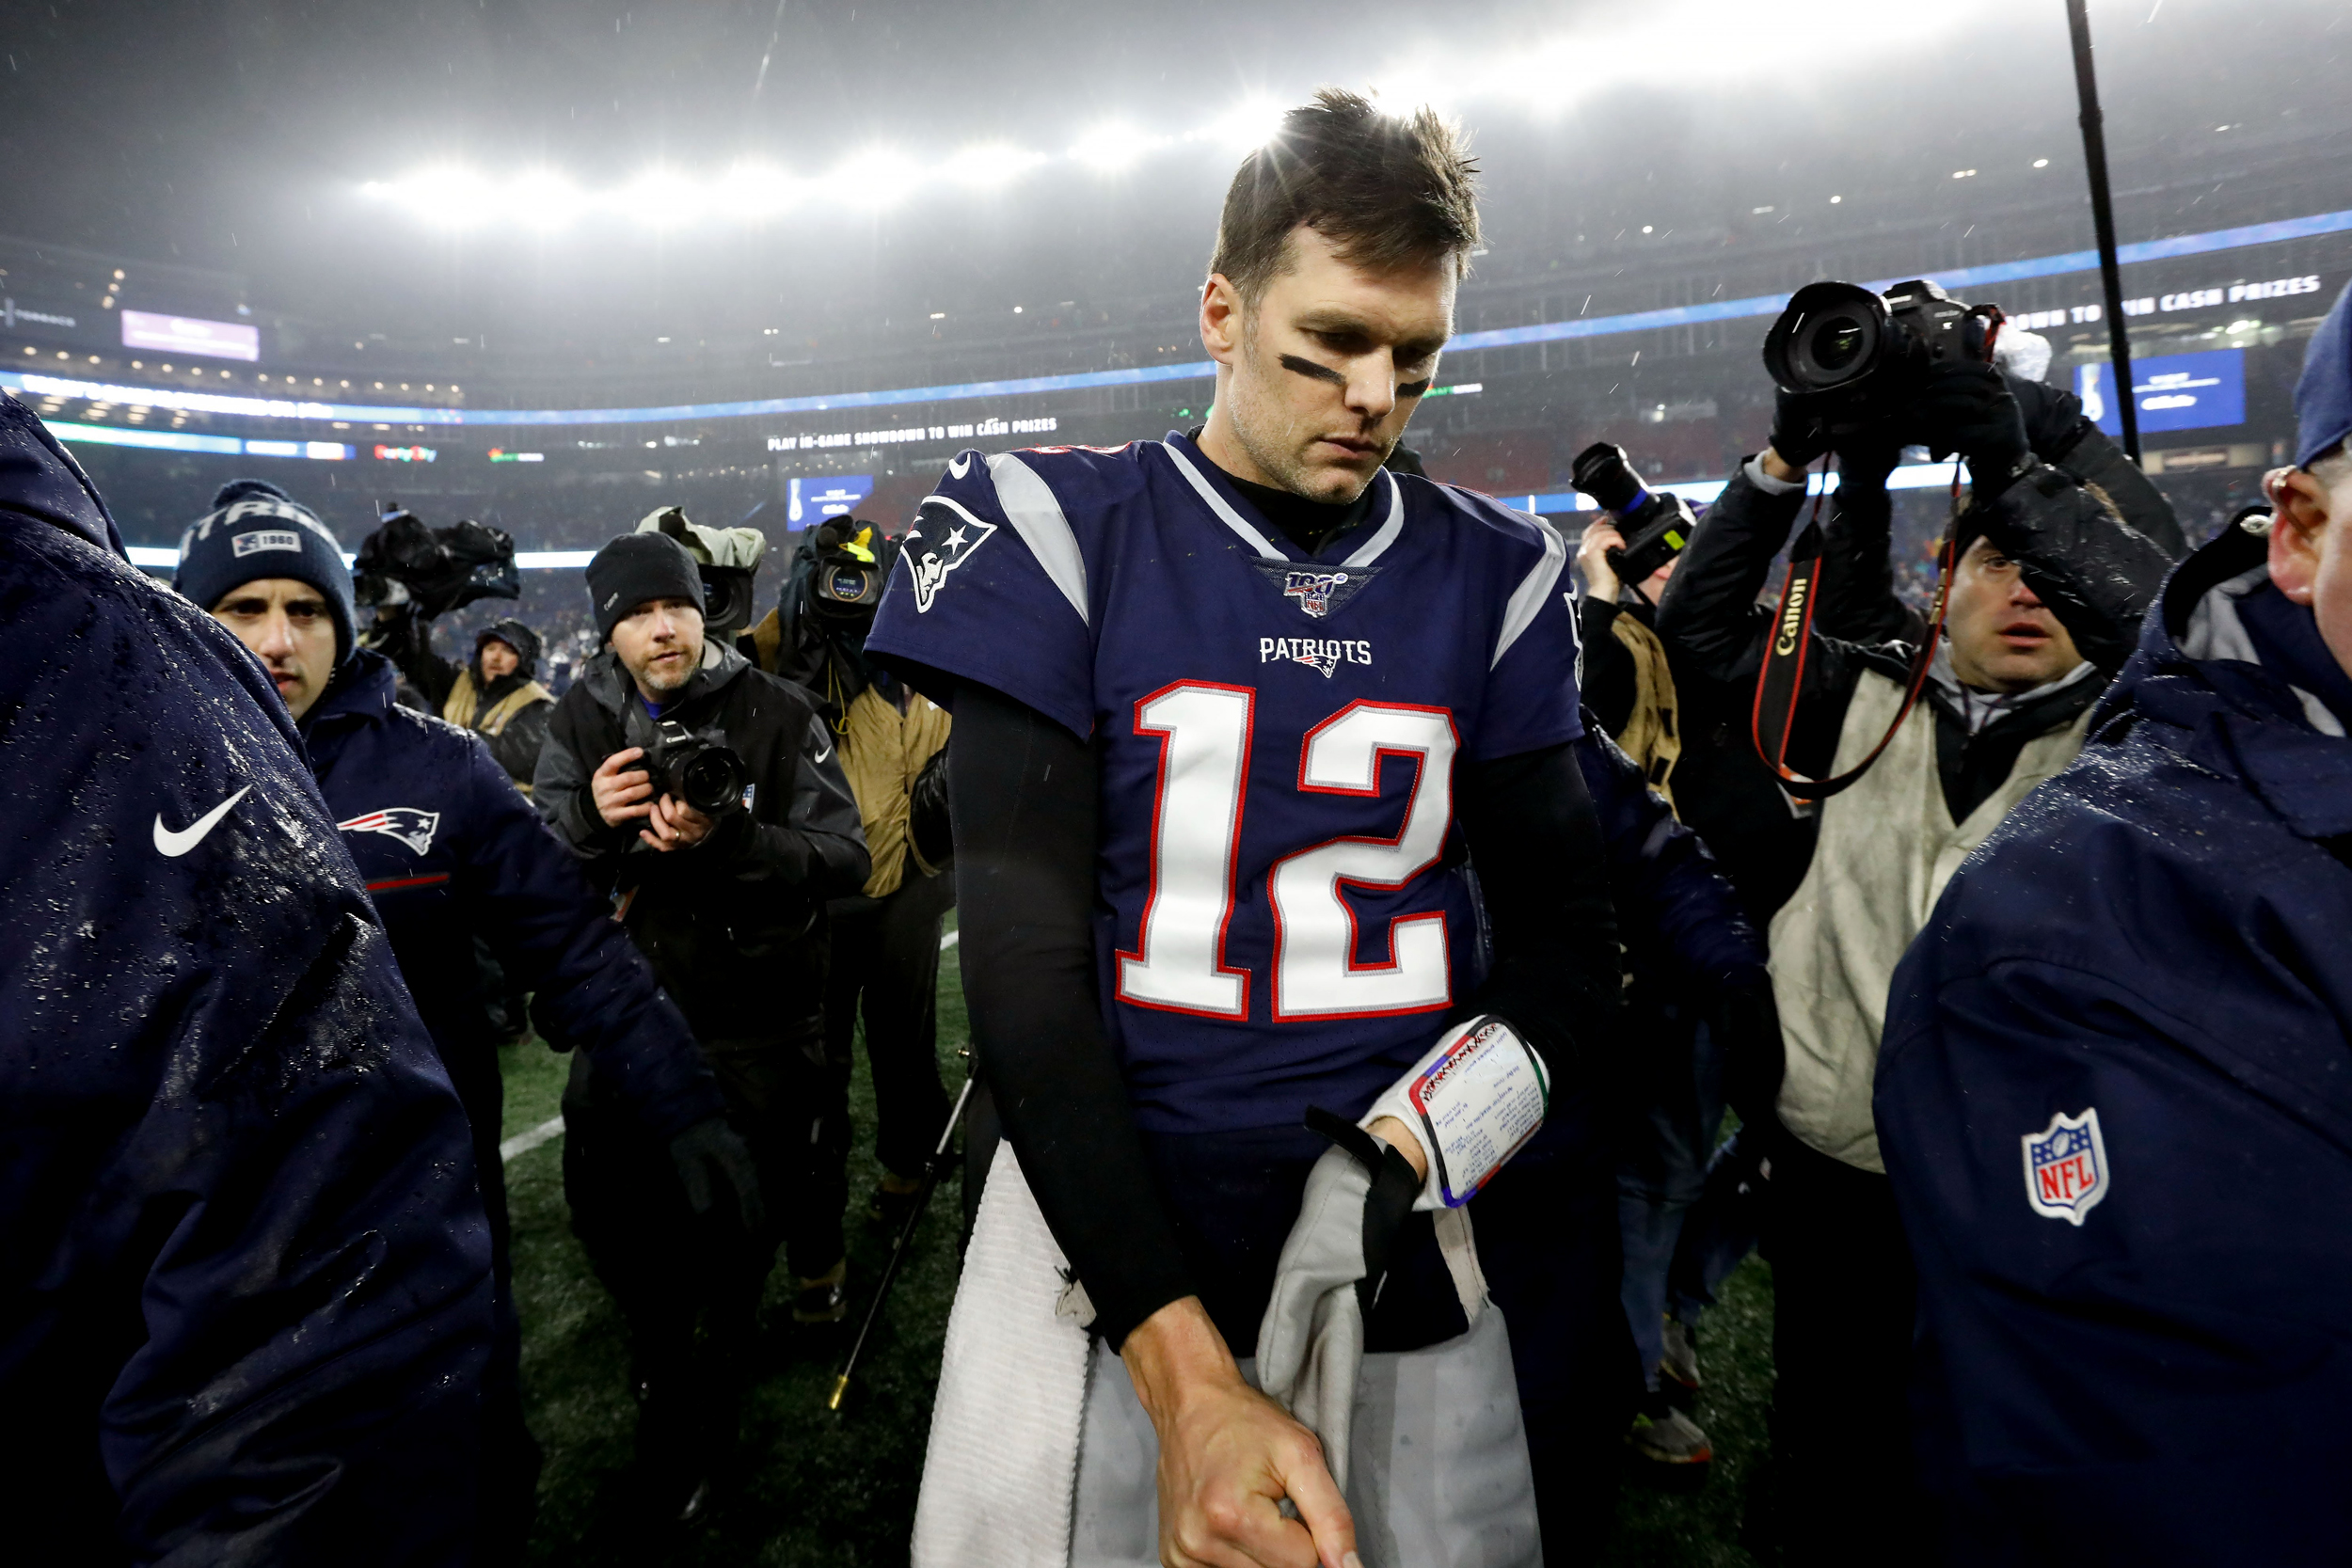 New England Patriots stunned by Tennessee Titans as rumors swirl ...